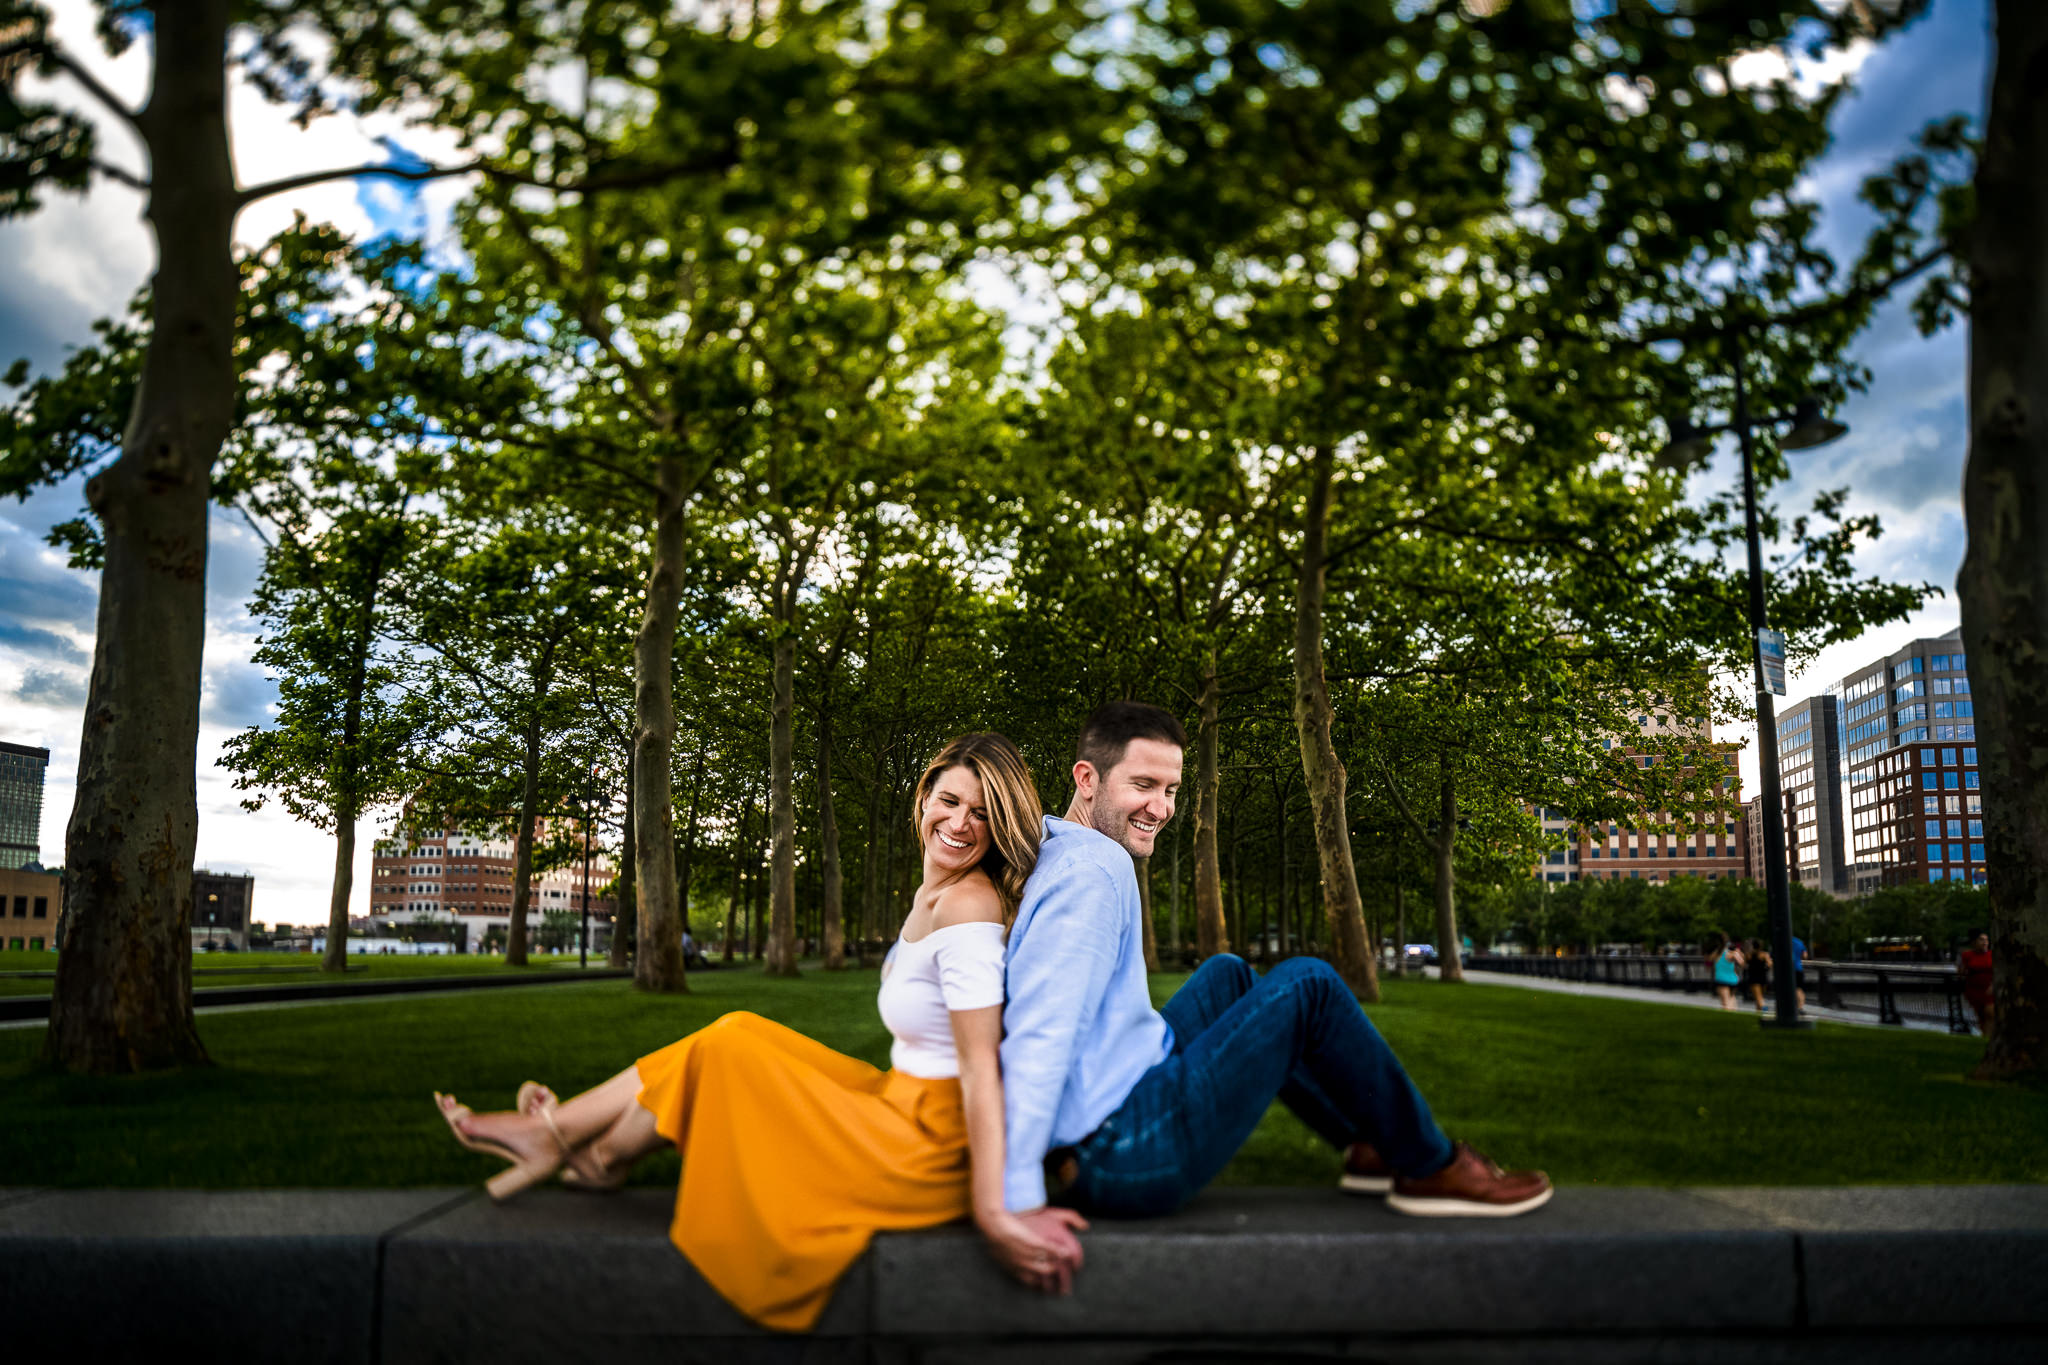 Flanagan-Pier-Hoboken-Engagement-Photos-NYC-Photographer-14.JPG